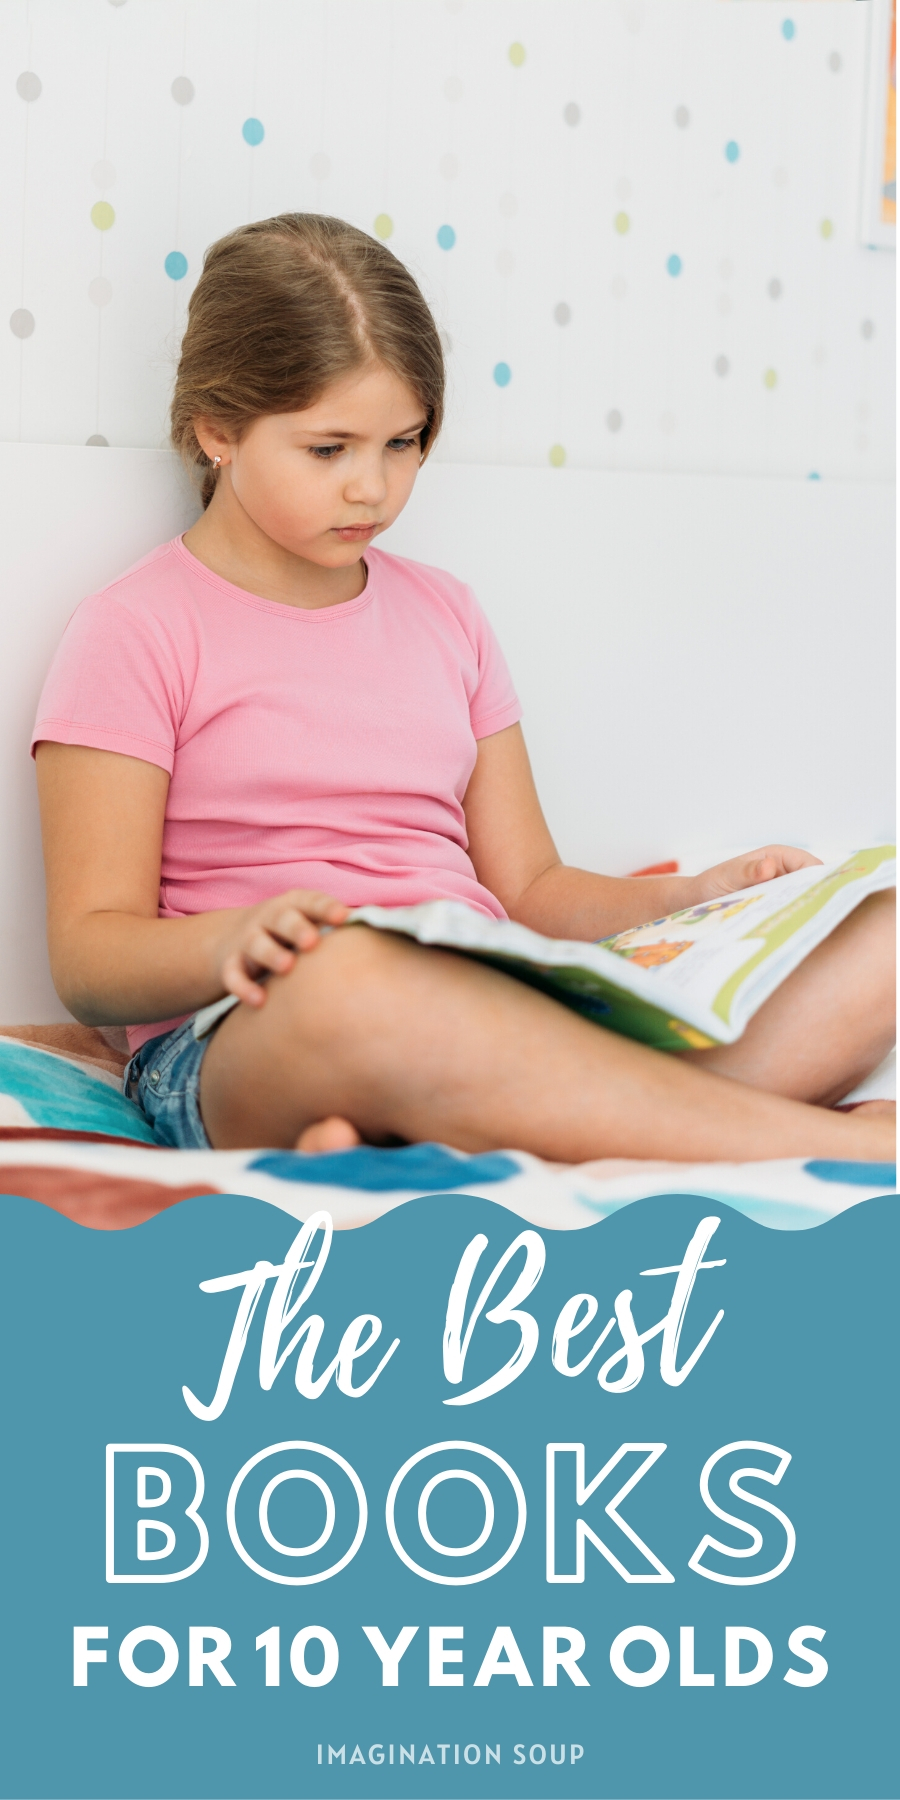 Best Books for 12 Year Olds 12th Grade   Imagination Soup   Good ...